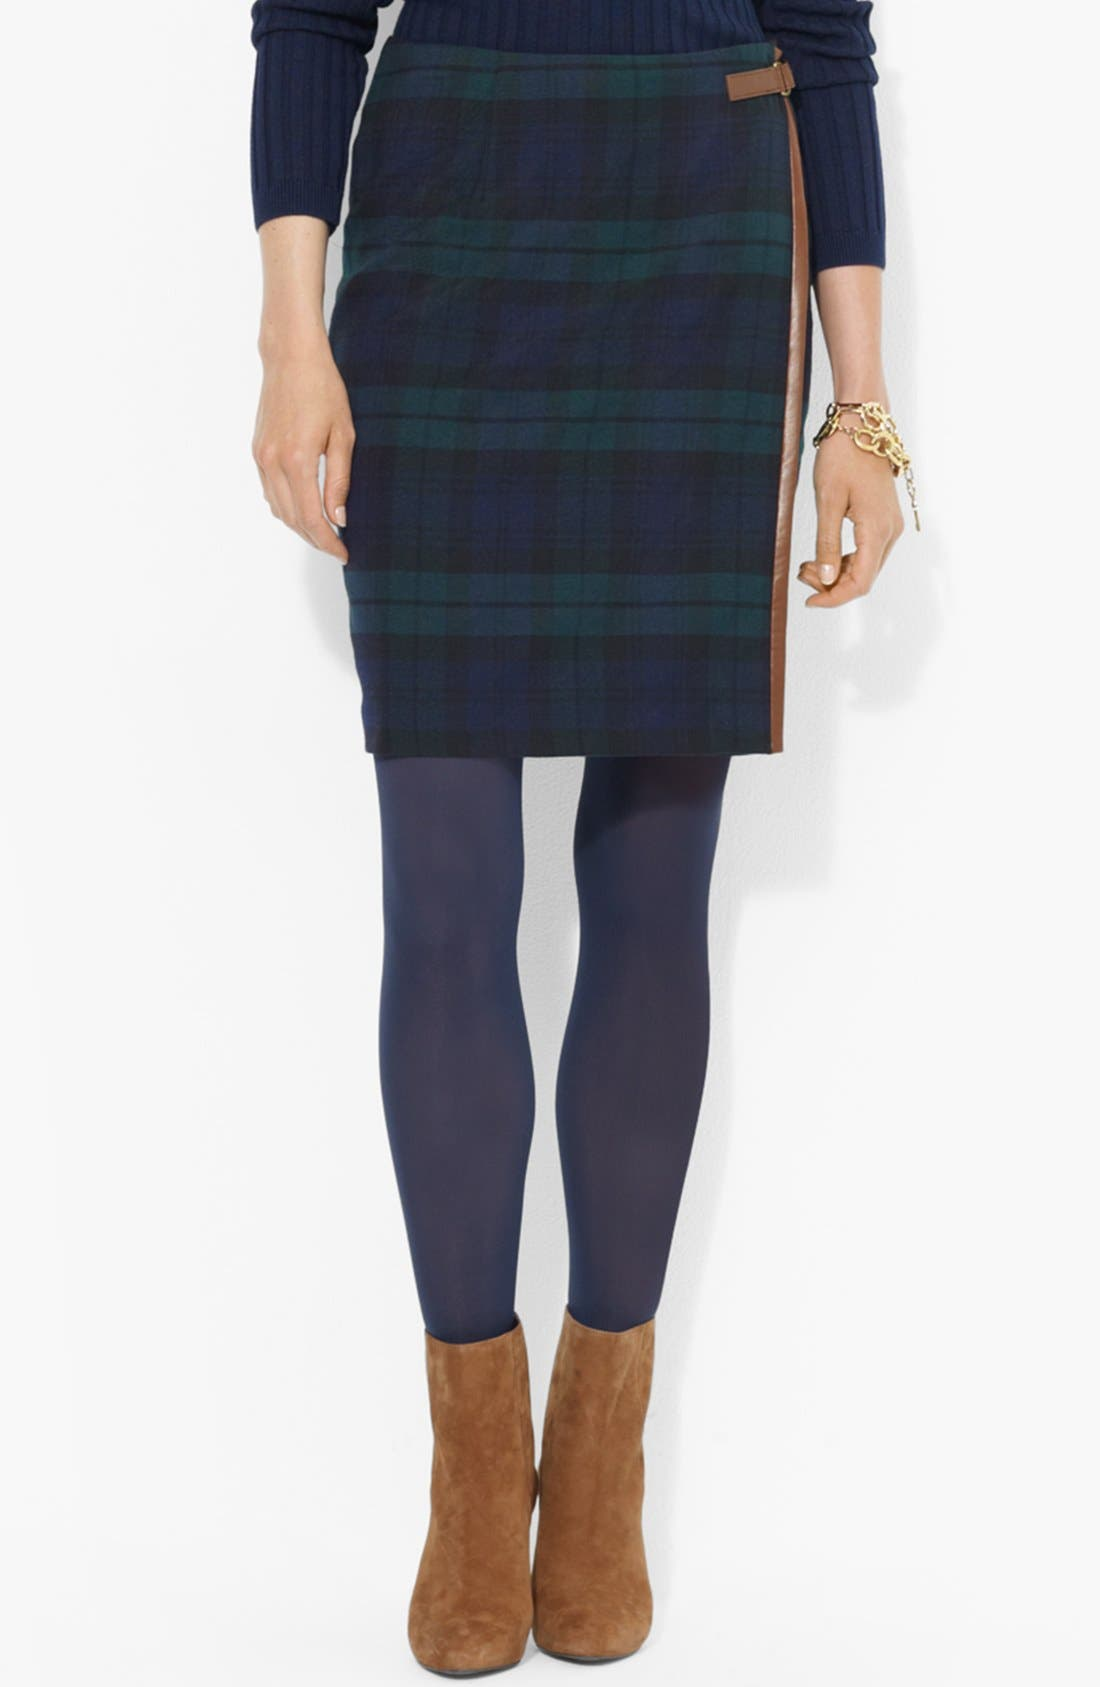 Alternate Image 1 Selected - Lauren Ralph Lauren Leather Trim Plaid Pencil Skirt